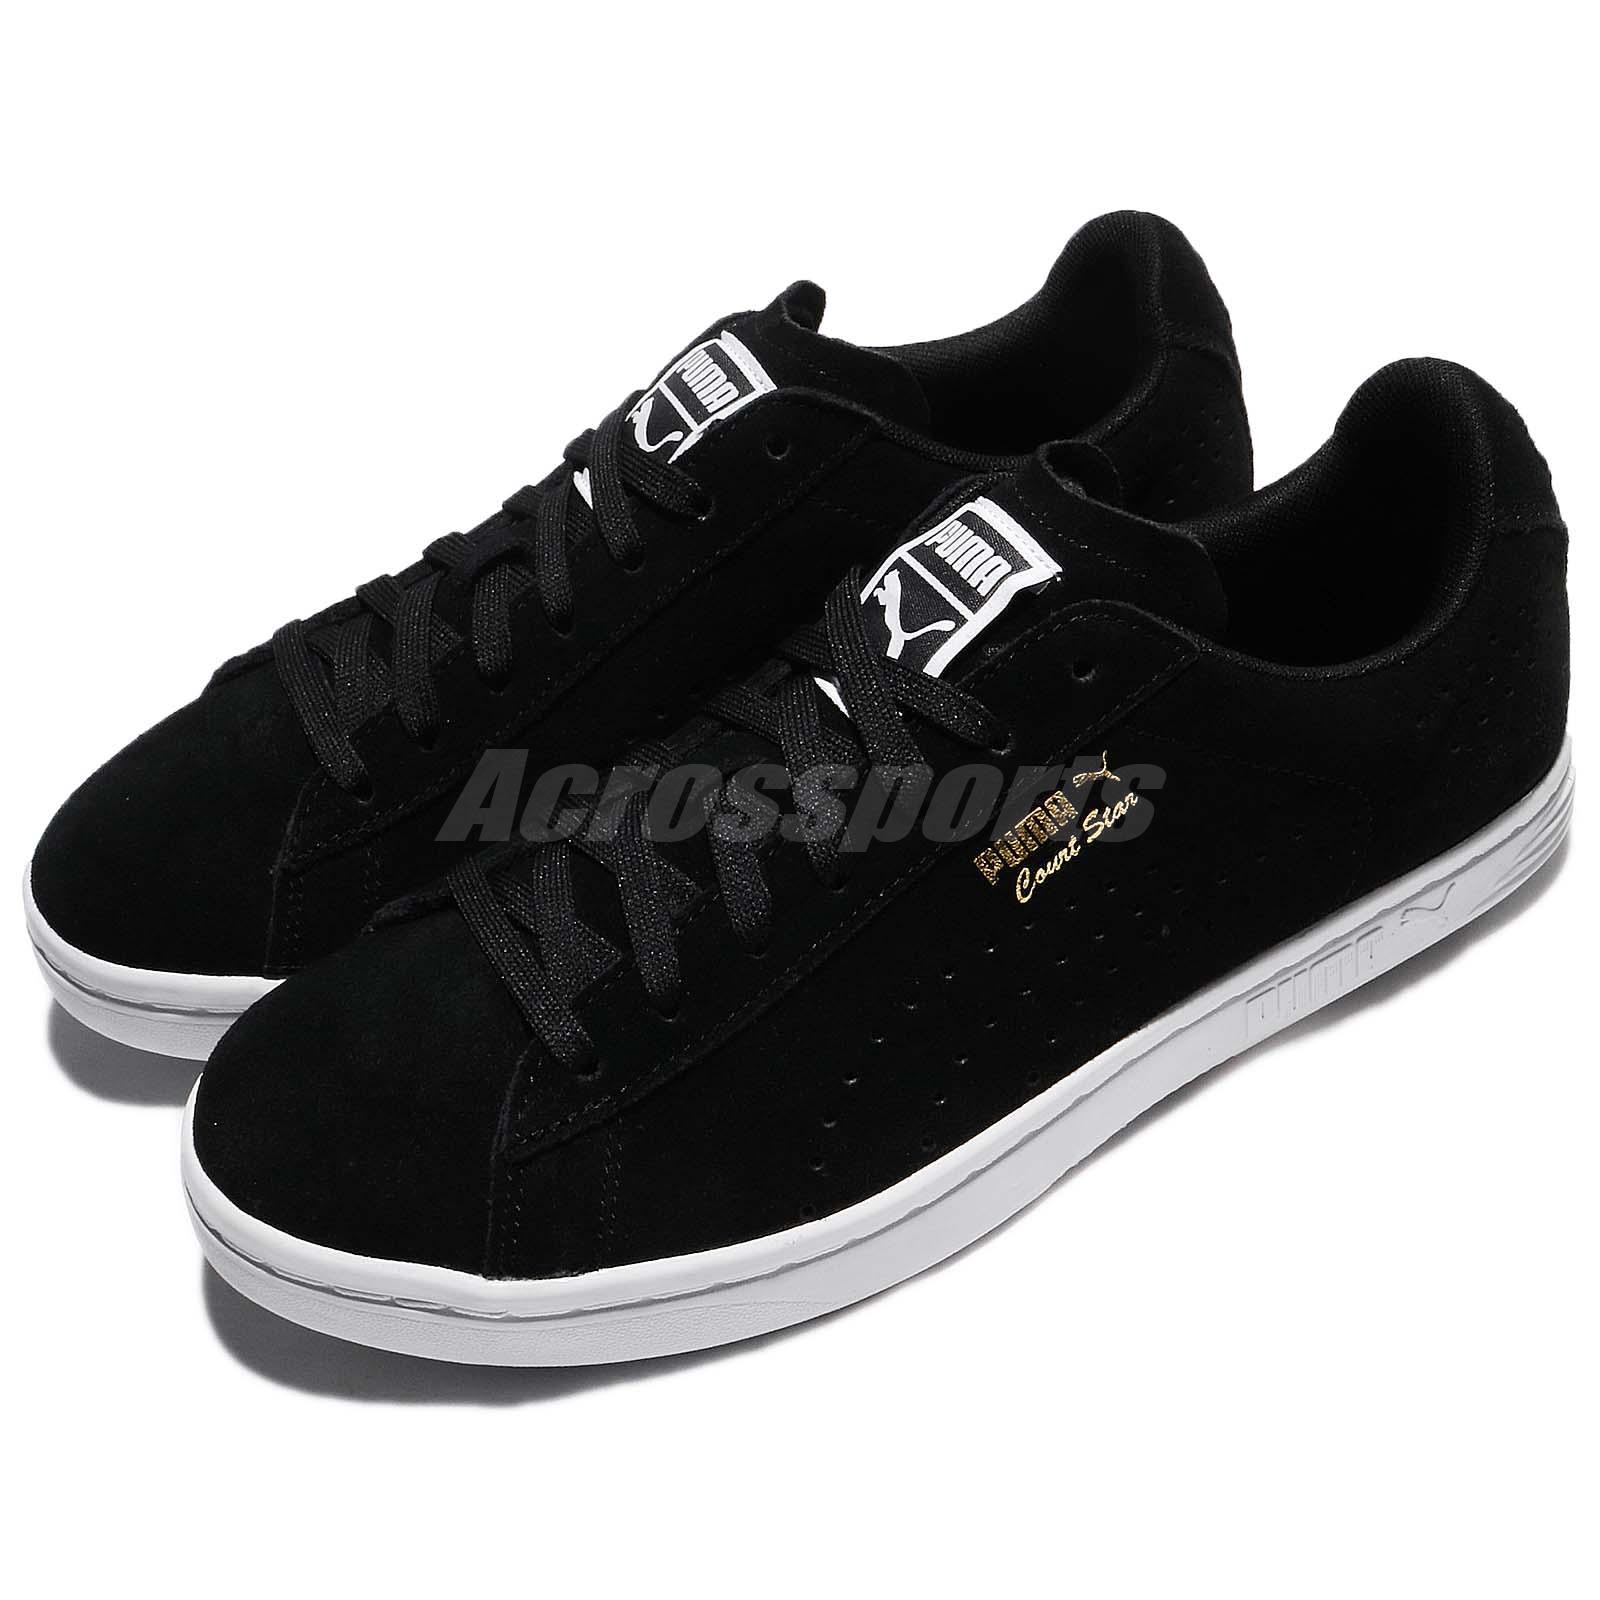 best loved 6502e 77dea Details about Puma Court Star Suede Black White Gold Men Casual Shoes  Sneakers 364621-01